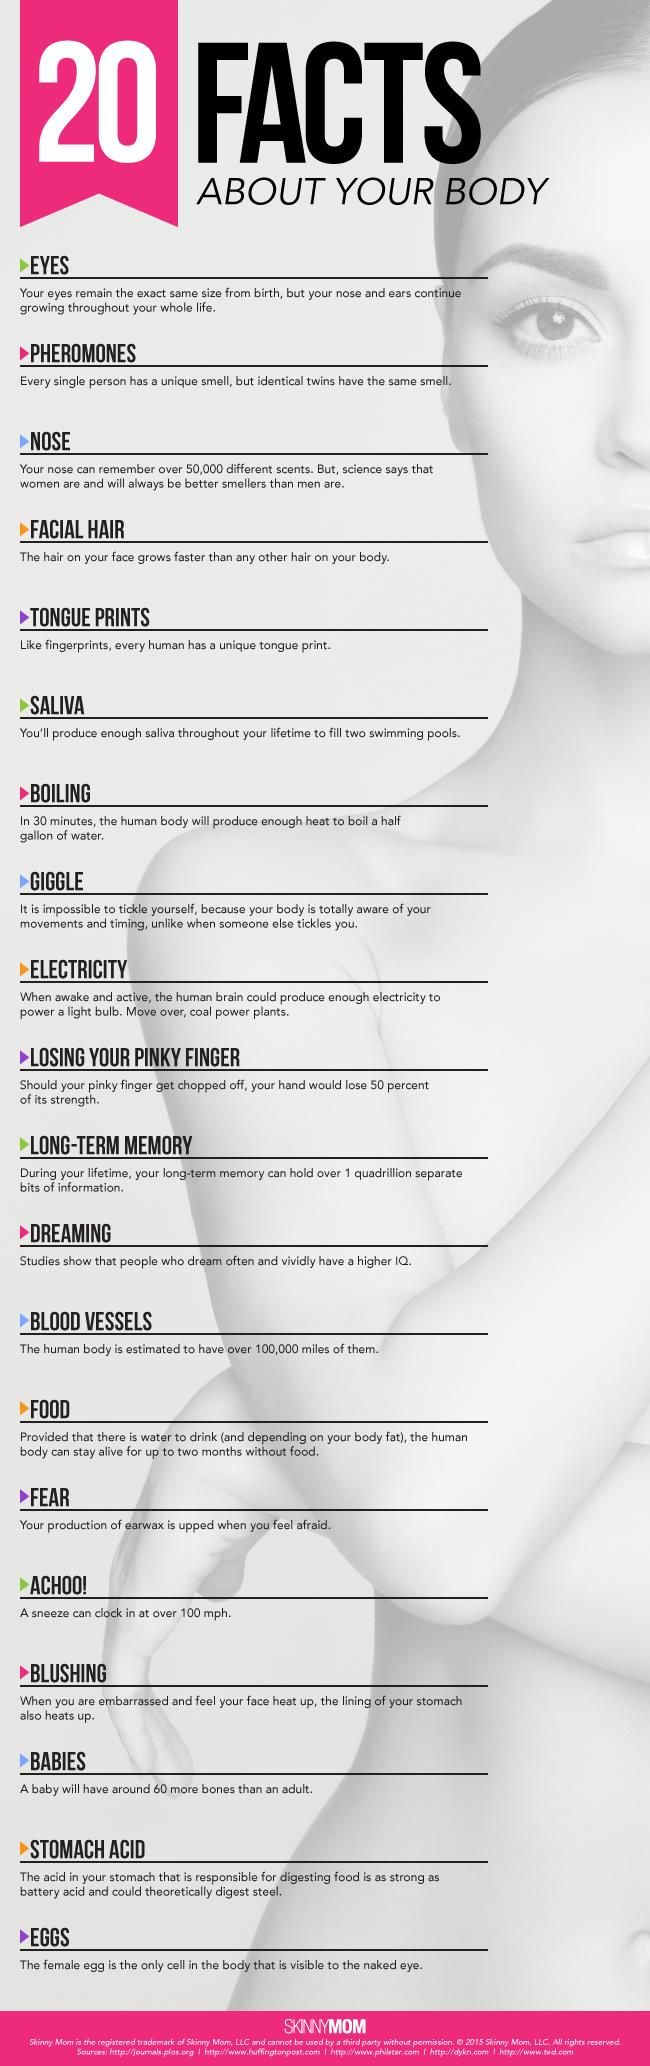 weird facts about your body infographic